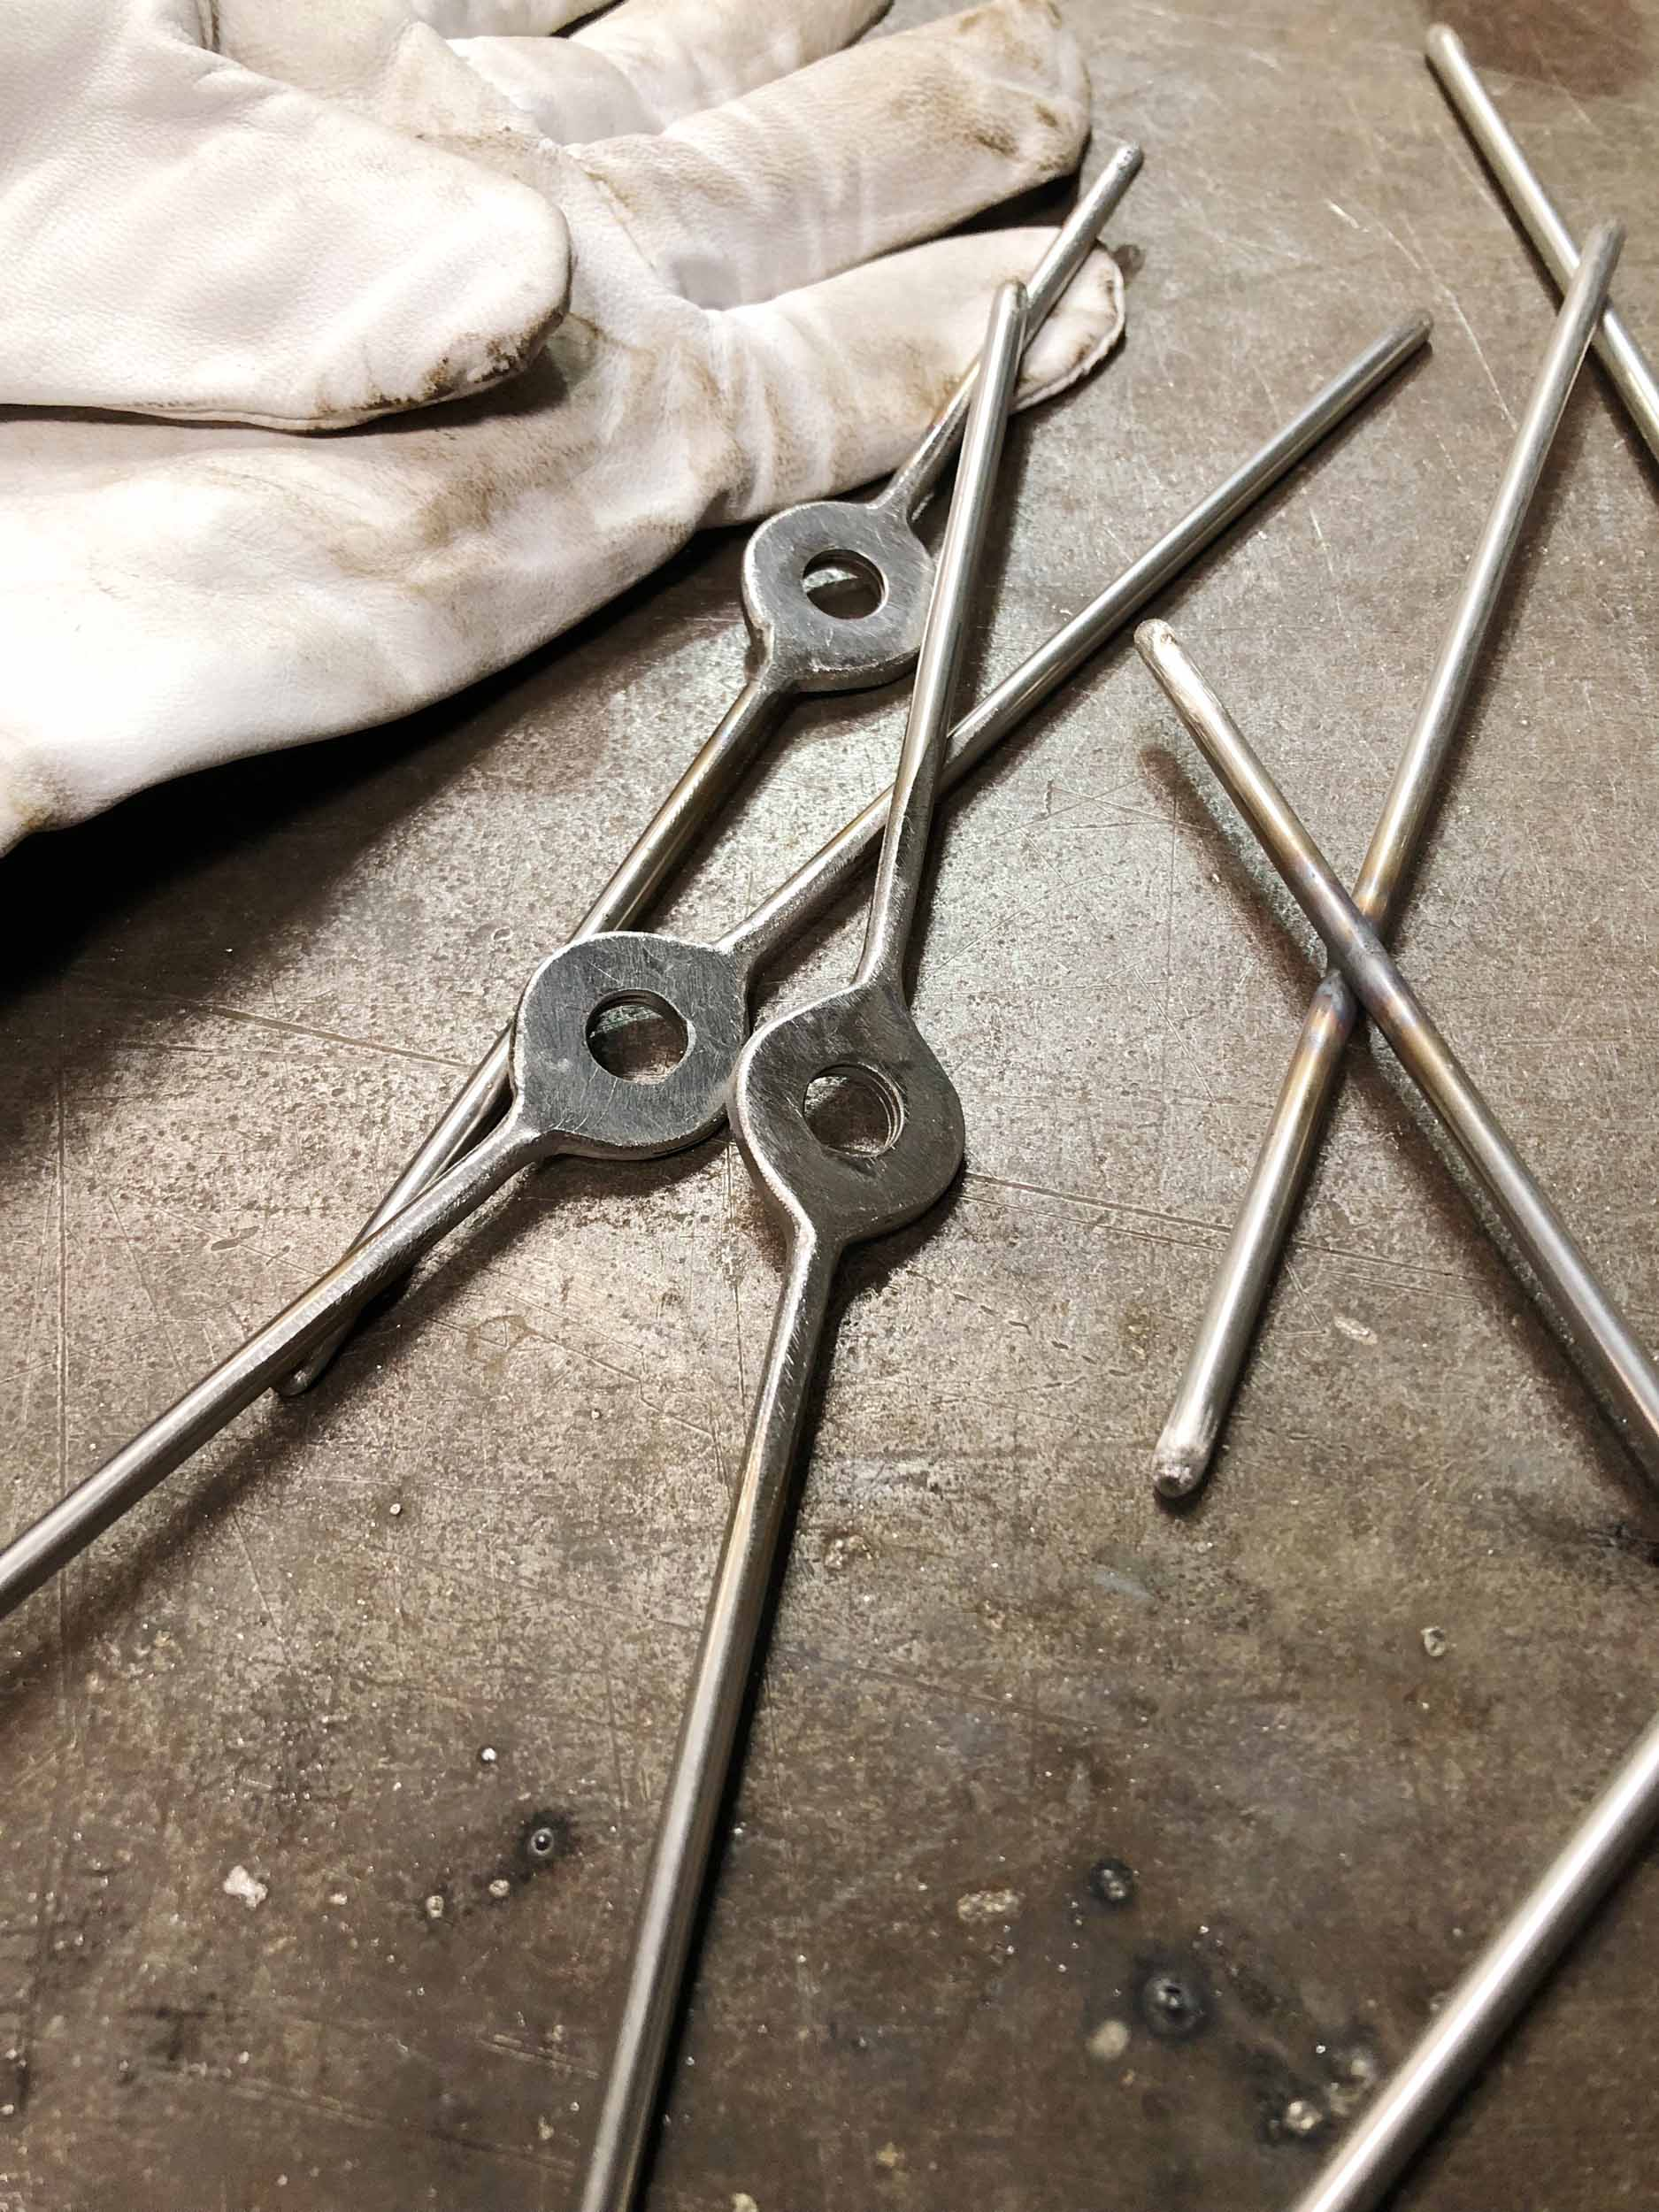 I've been welding up some new goodies for the gallery. Can you guess what these will be?